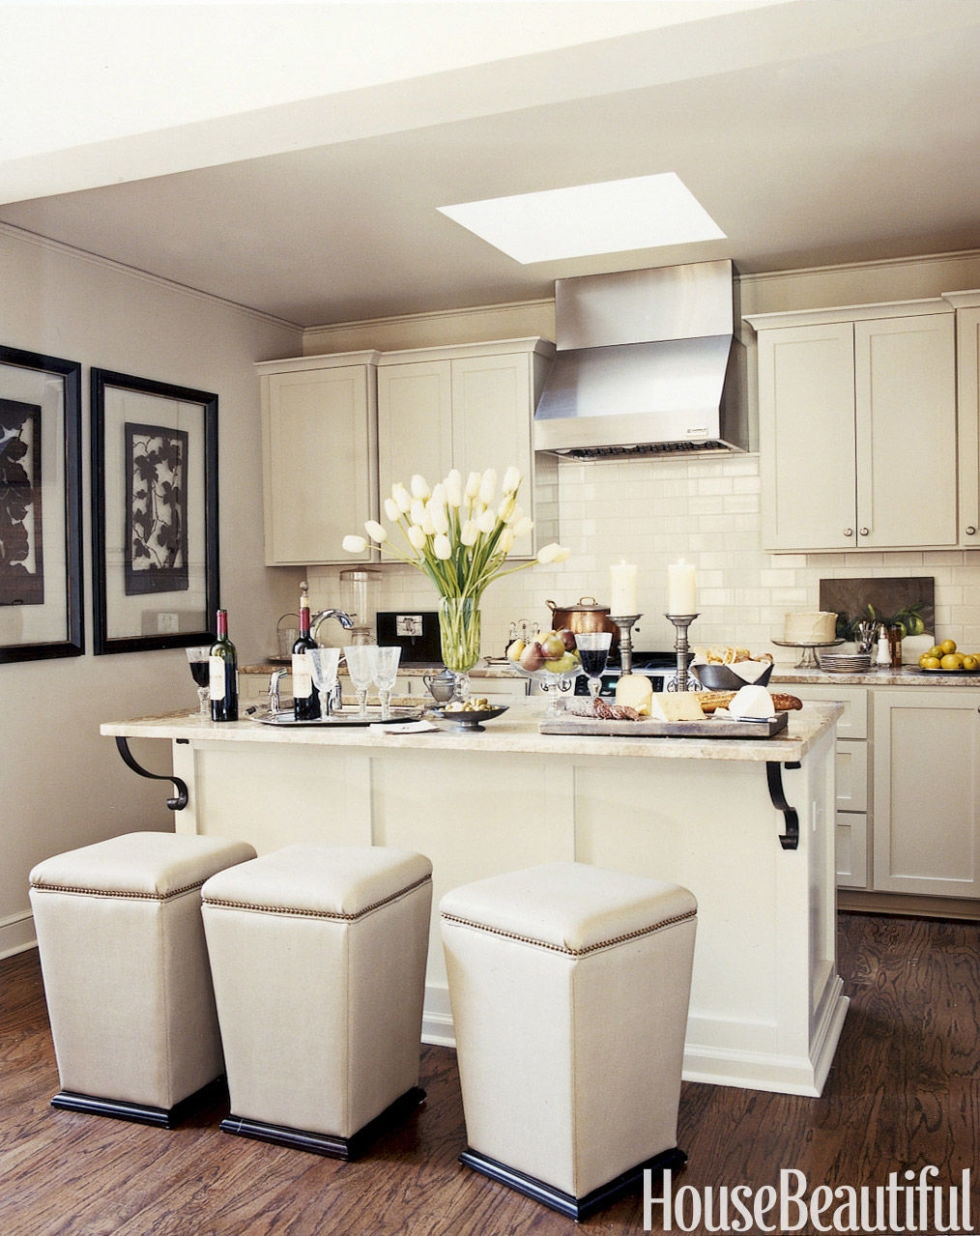 Decoration Ideas For Small Kitchens